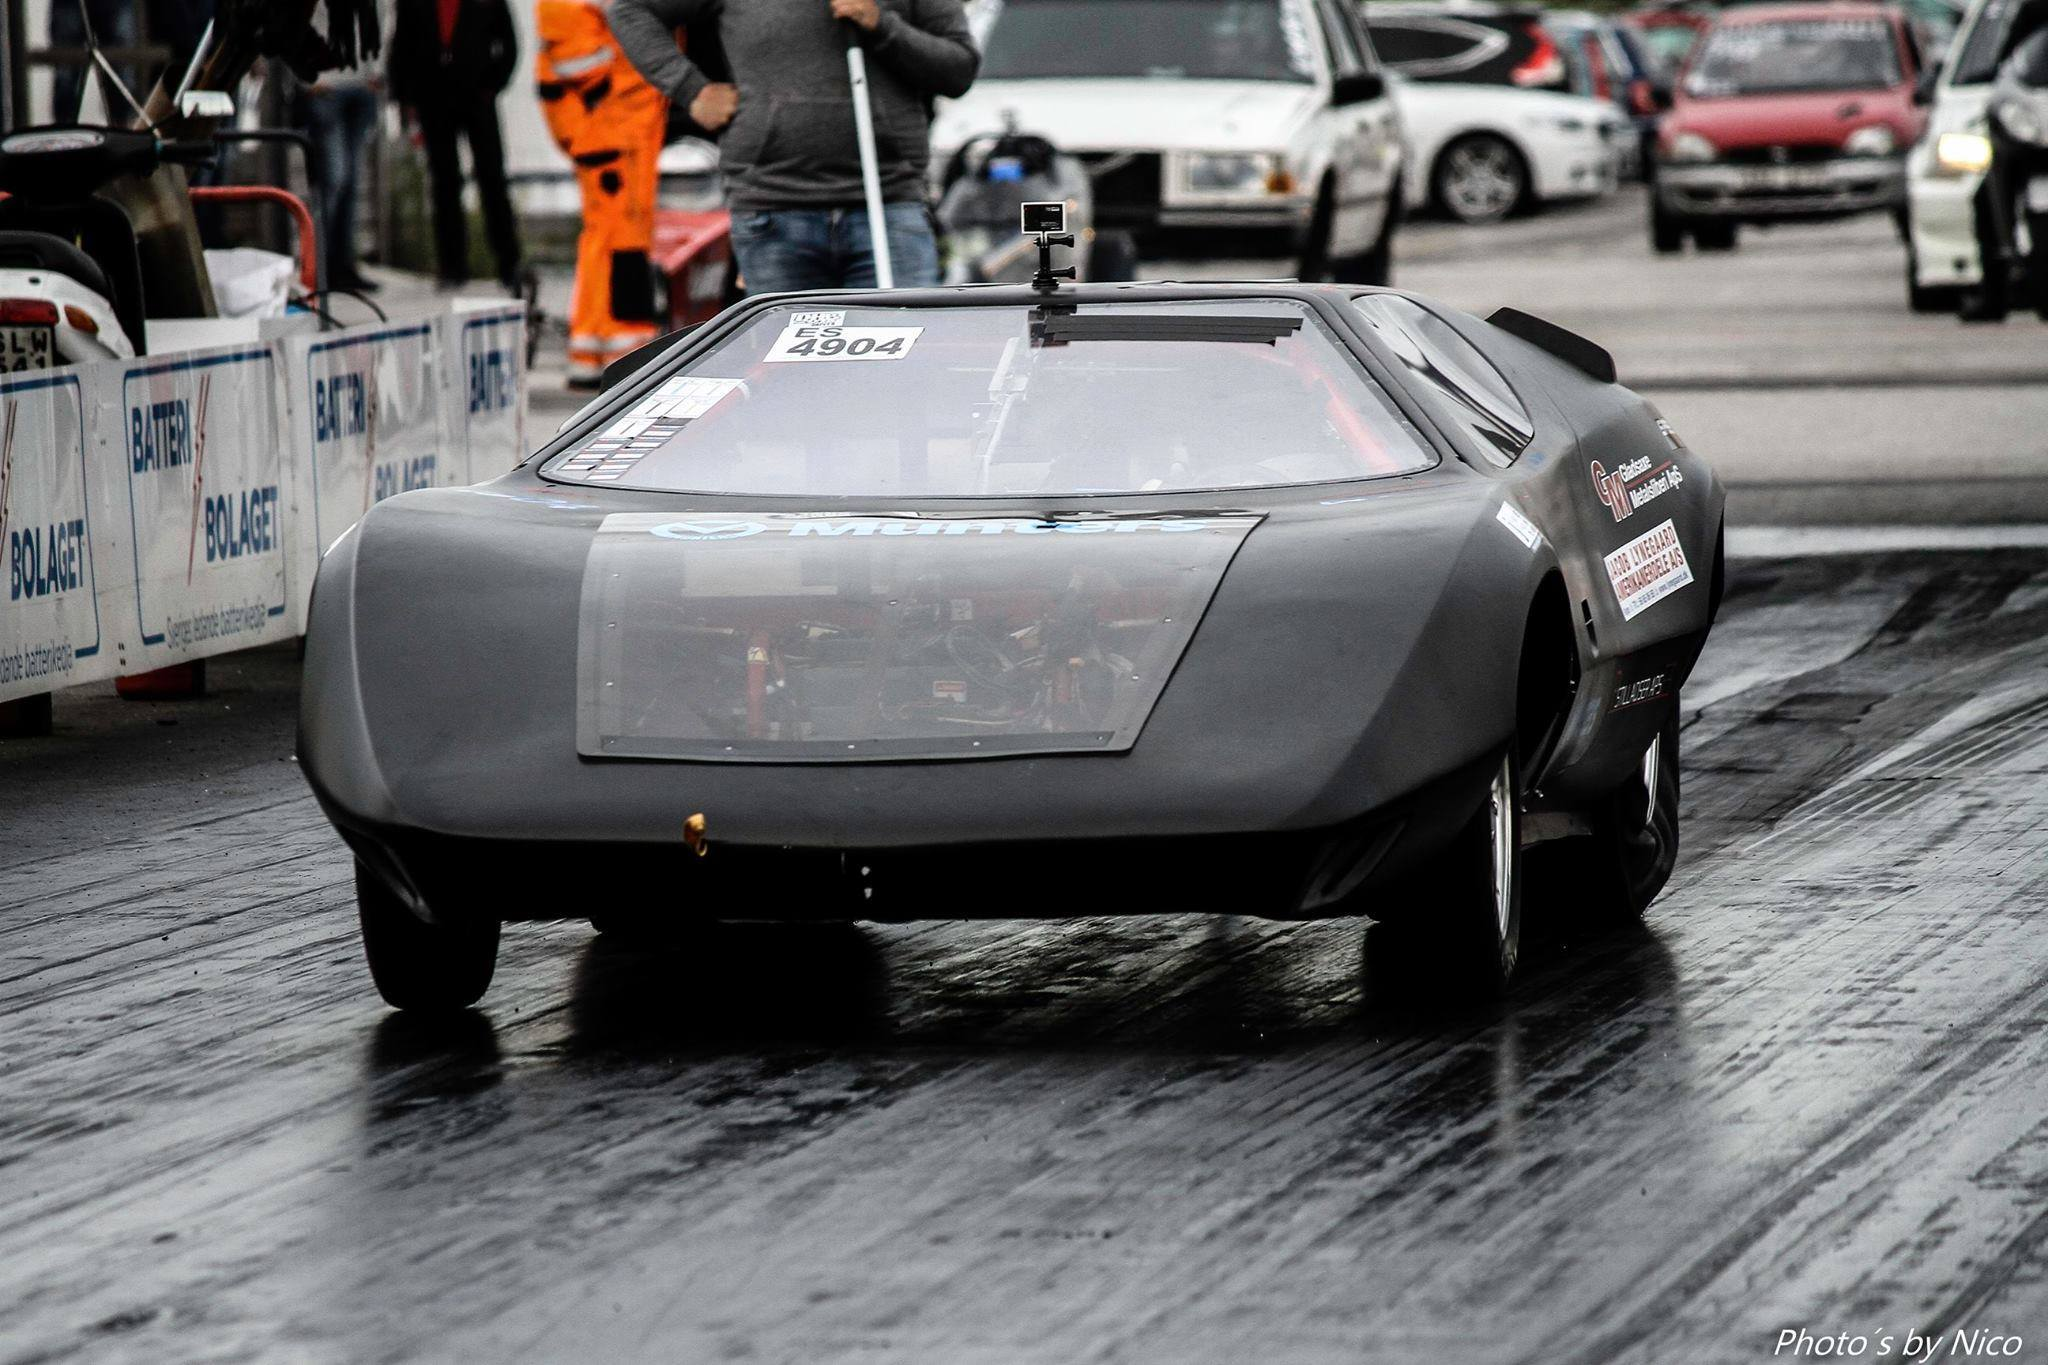 Electric Vehicle Breaks Drag-Racing World Record (at 144.8 MPH)